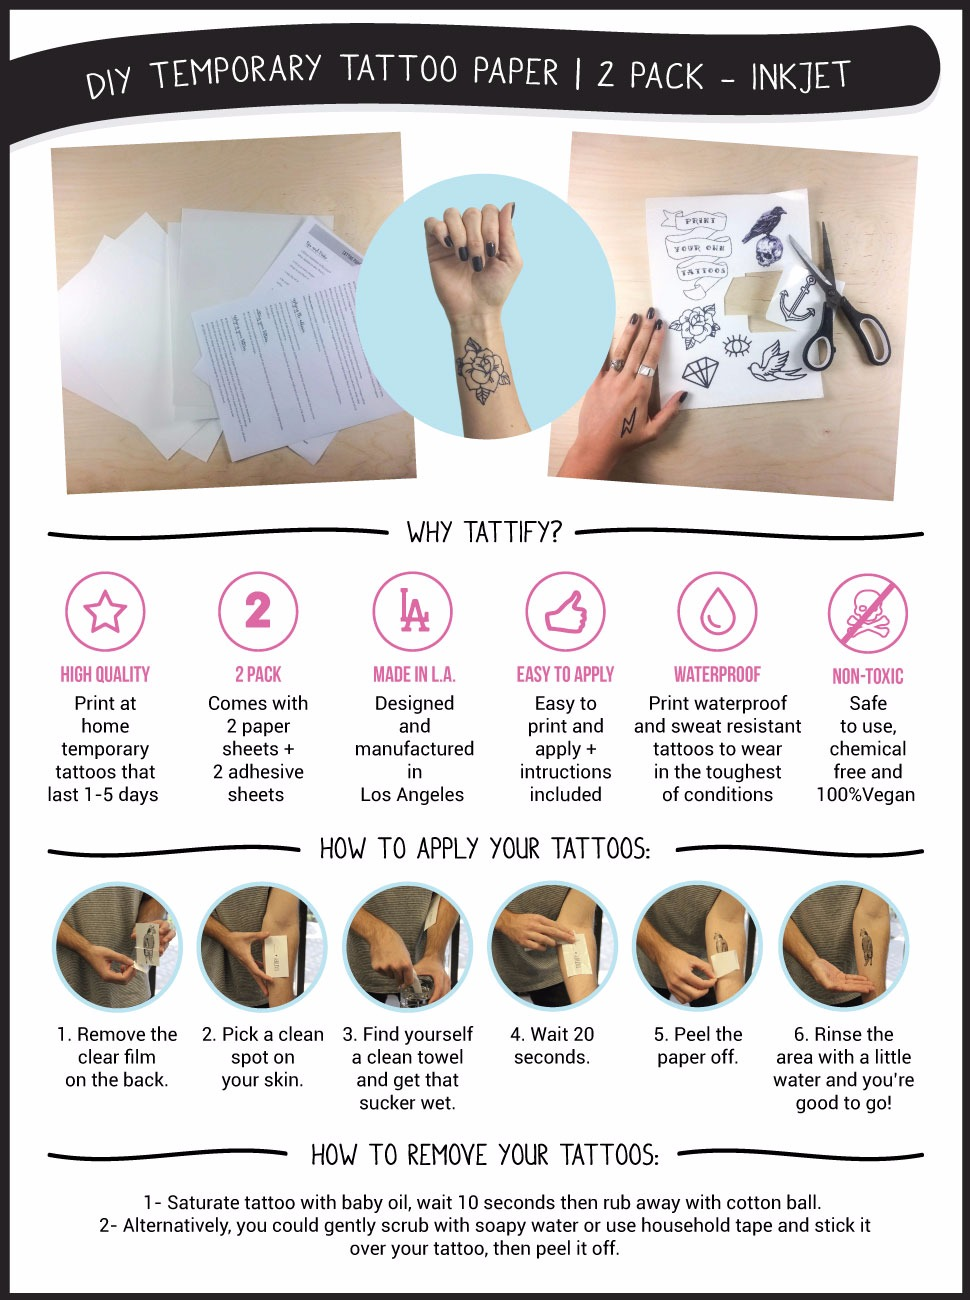 Tattify diy temporary tattoo paper 2 pack for for Diy tattoo transfer paper